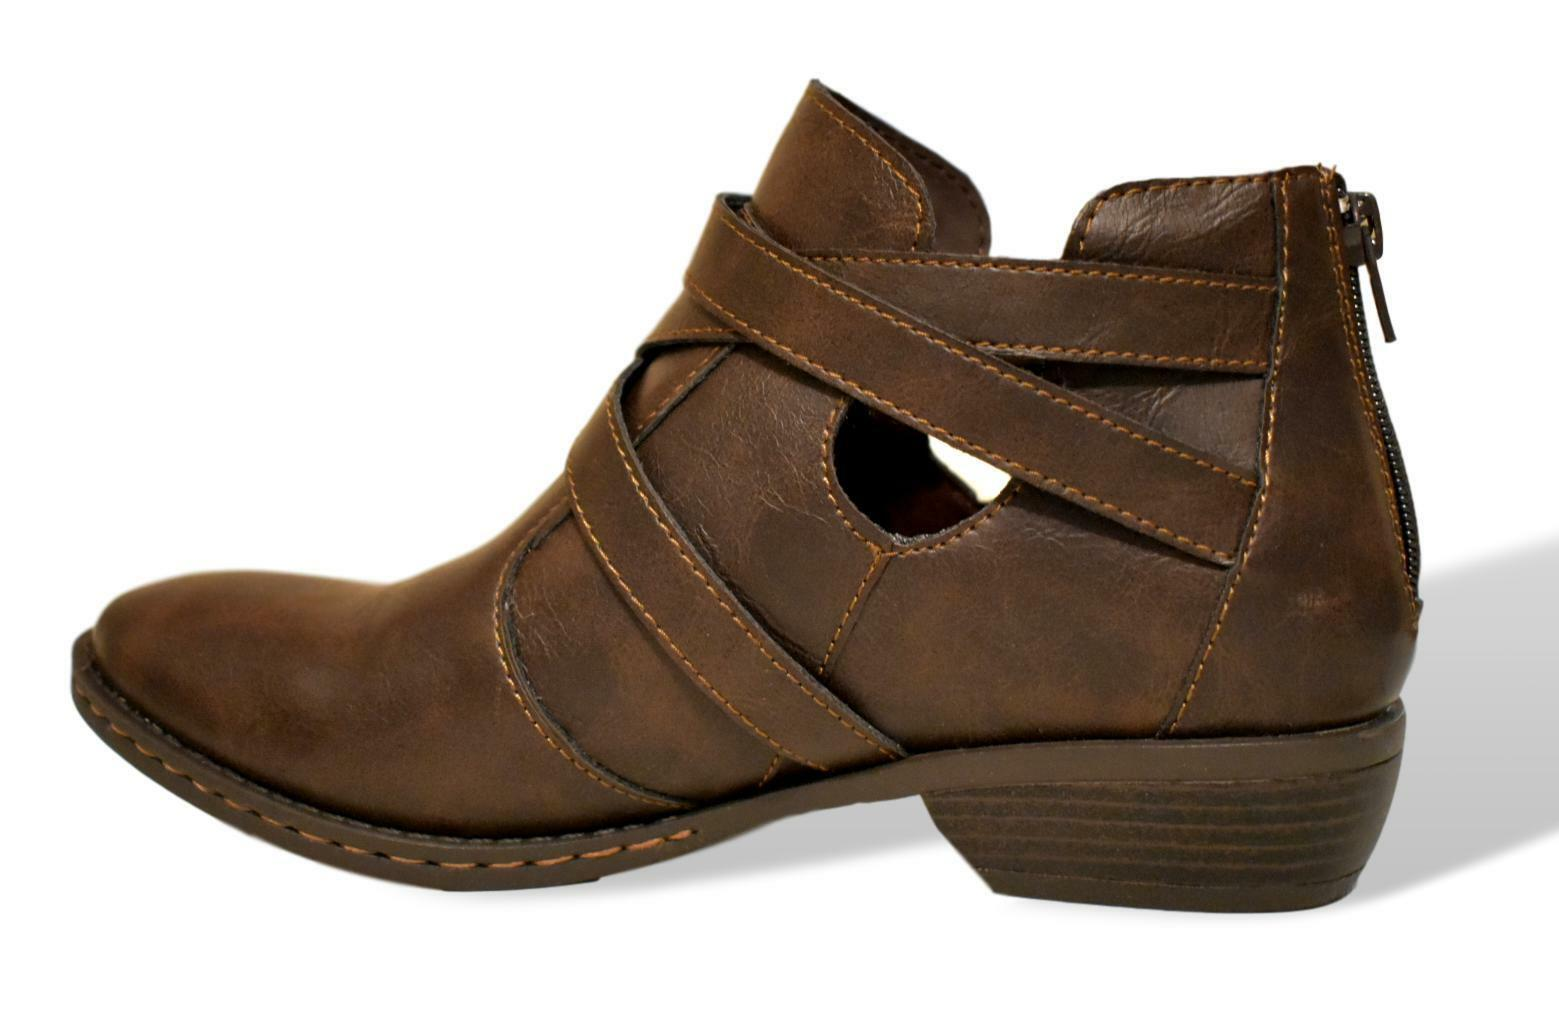 B.O.C. shoes Boots DENALI Brown (Coffee) 9M New in Box Buckle Round Toe Short